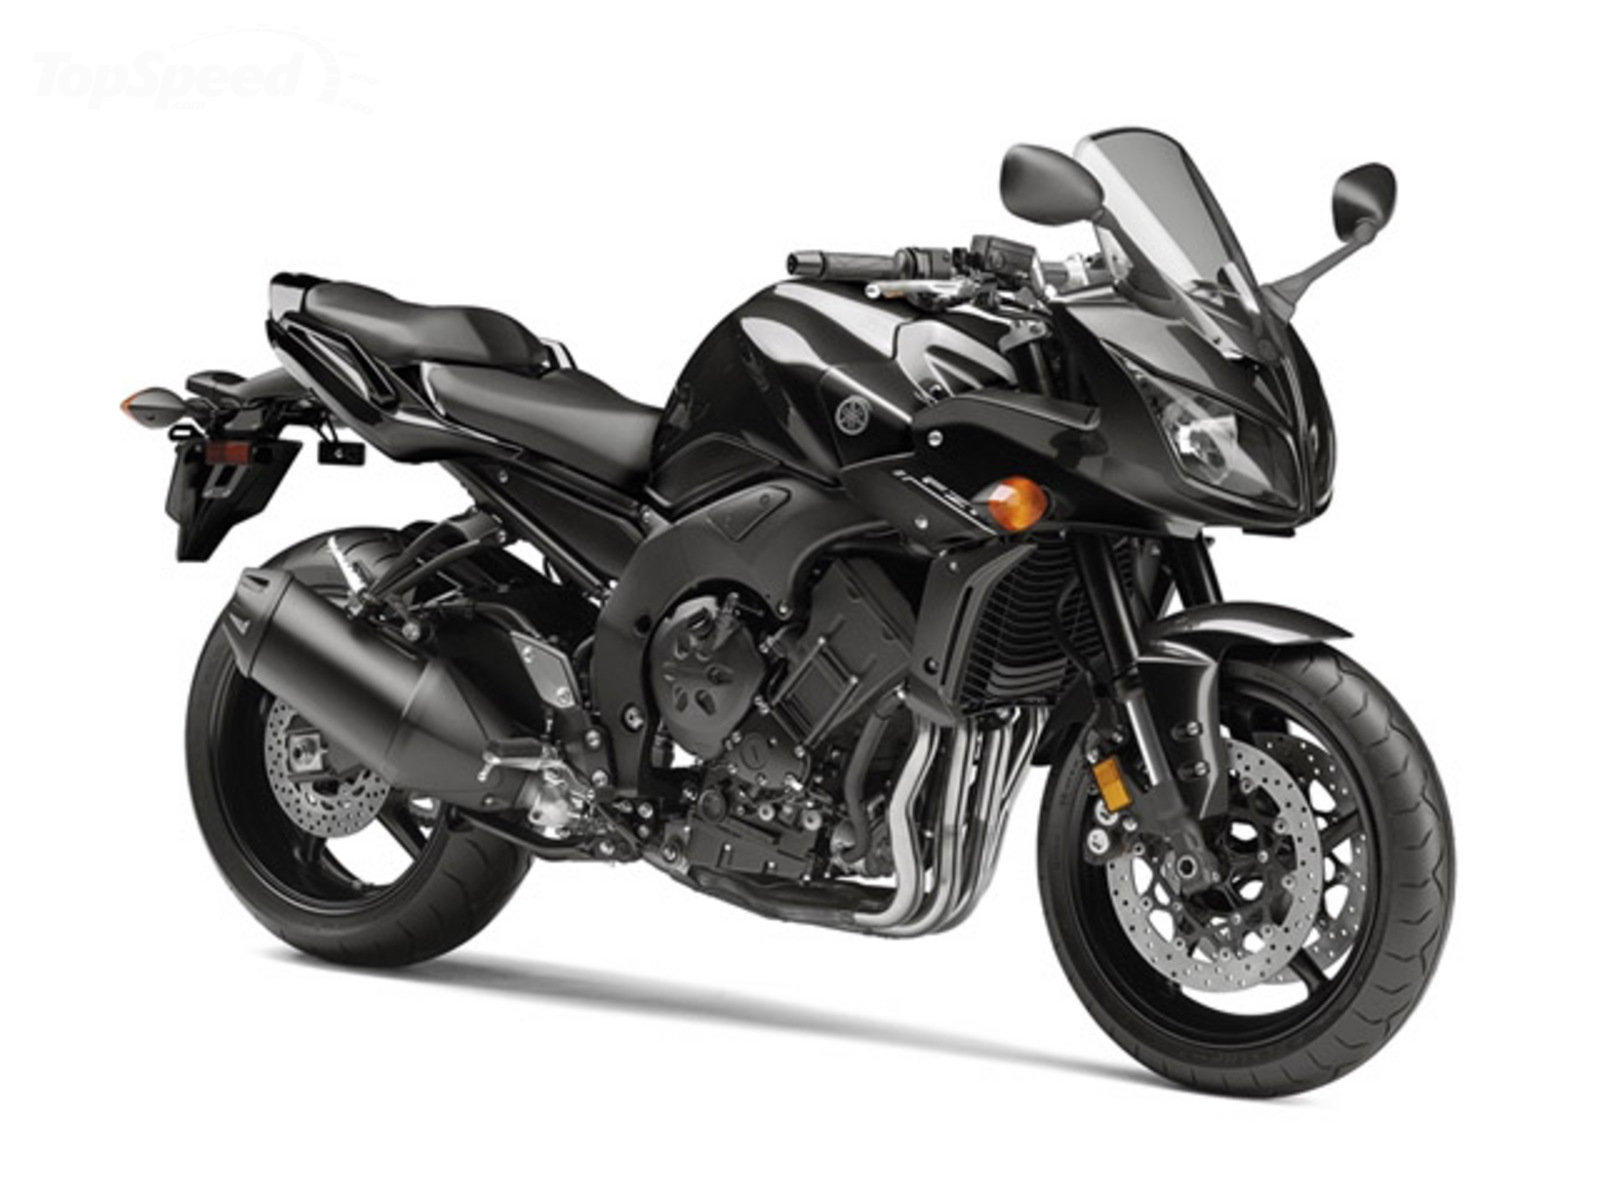 Download wallpapers Yamaha FZ1-N, silver motorcycle, new